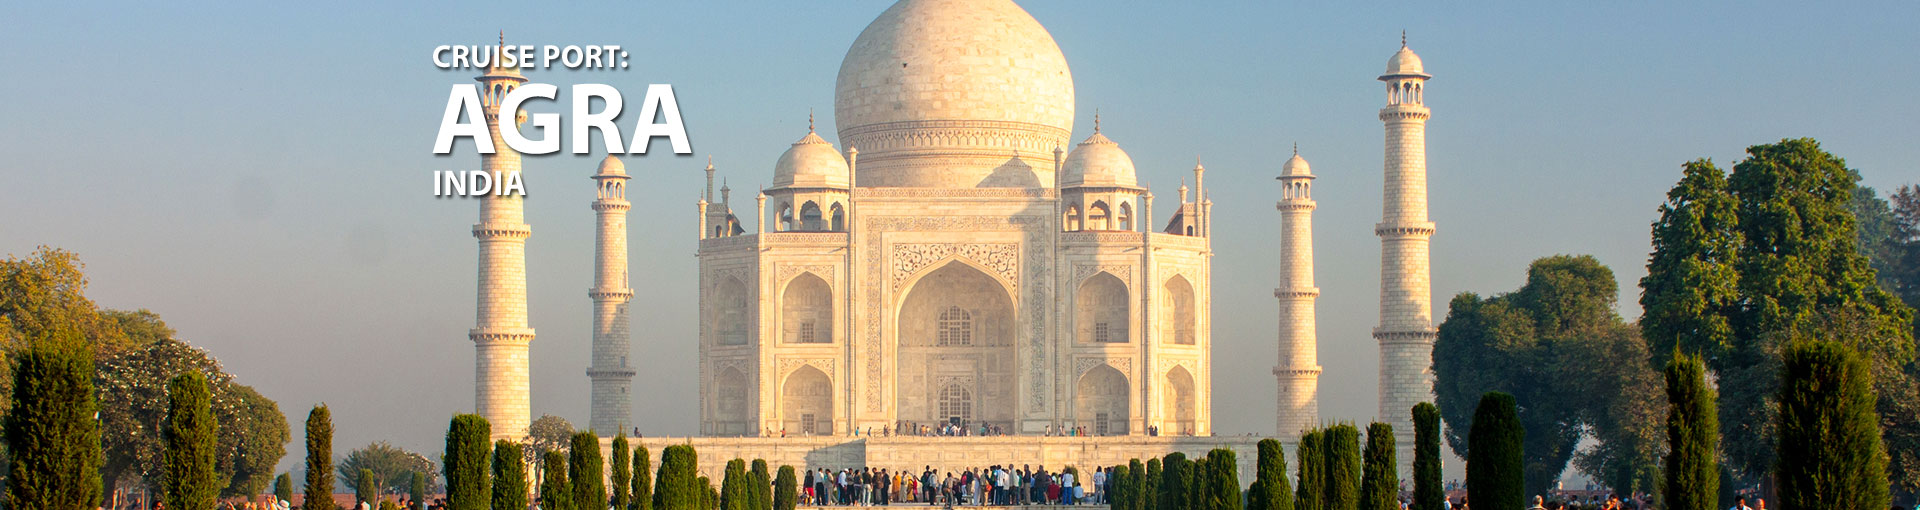 Cruises to Agra, India